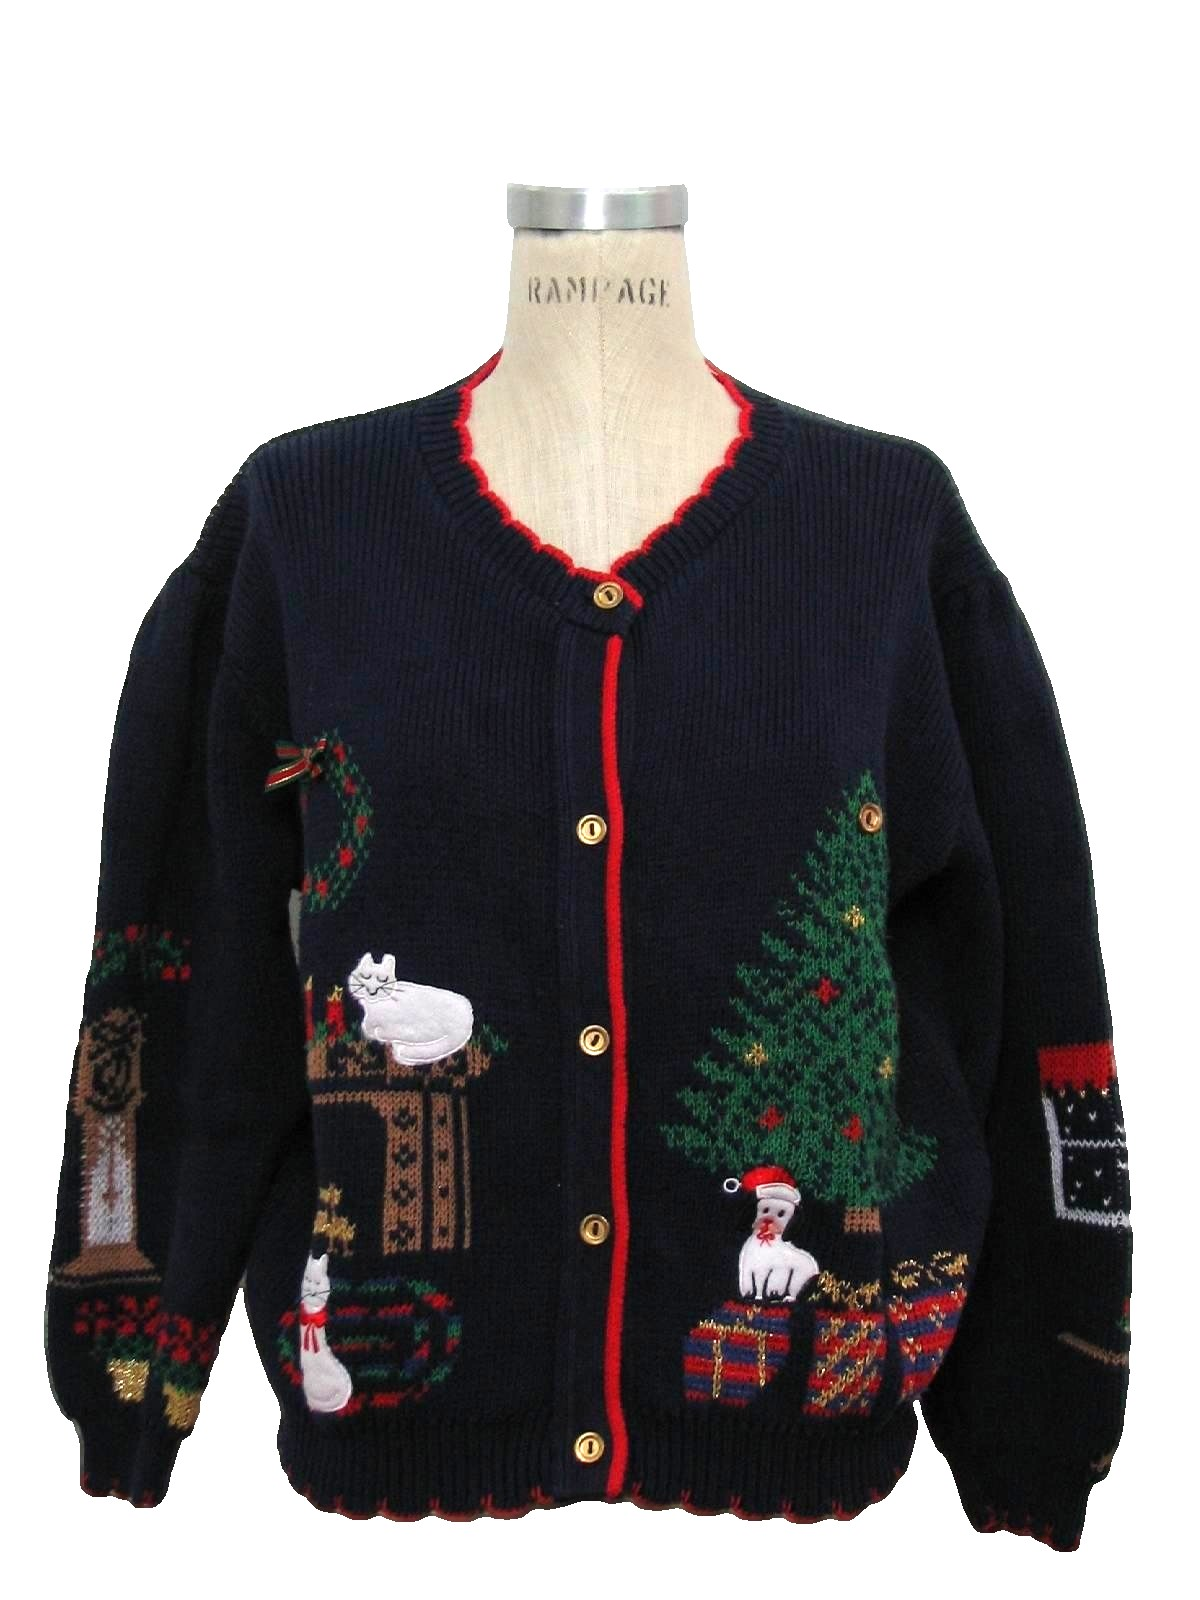 Eighties Womens Vintage Cat Tatsic Ugly Christmas Sweater 80s Authentic Vintage Made By Bonnie Noble Or Sweater Loft But Missing Label Womens Dark Blue Background Cotton Ramie Blend Button Front Longsleeve Ugly Christmas